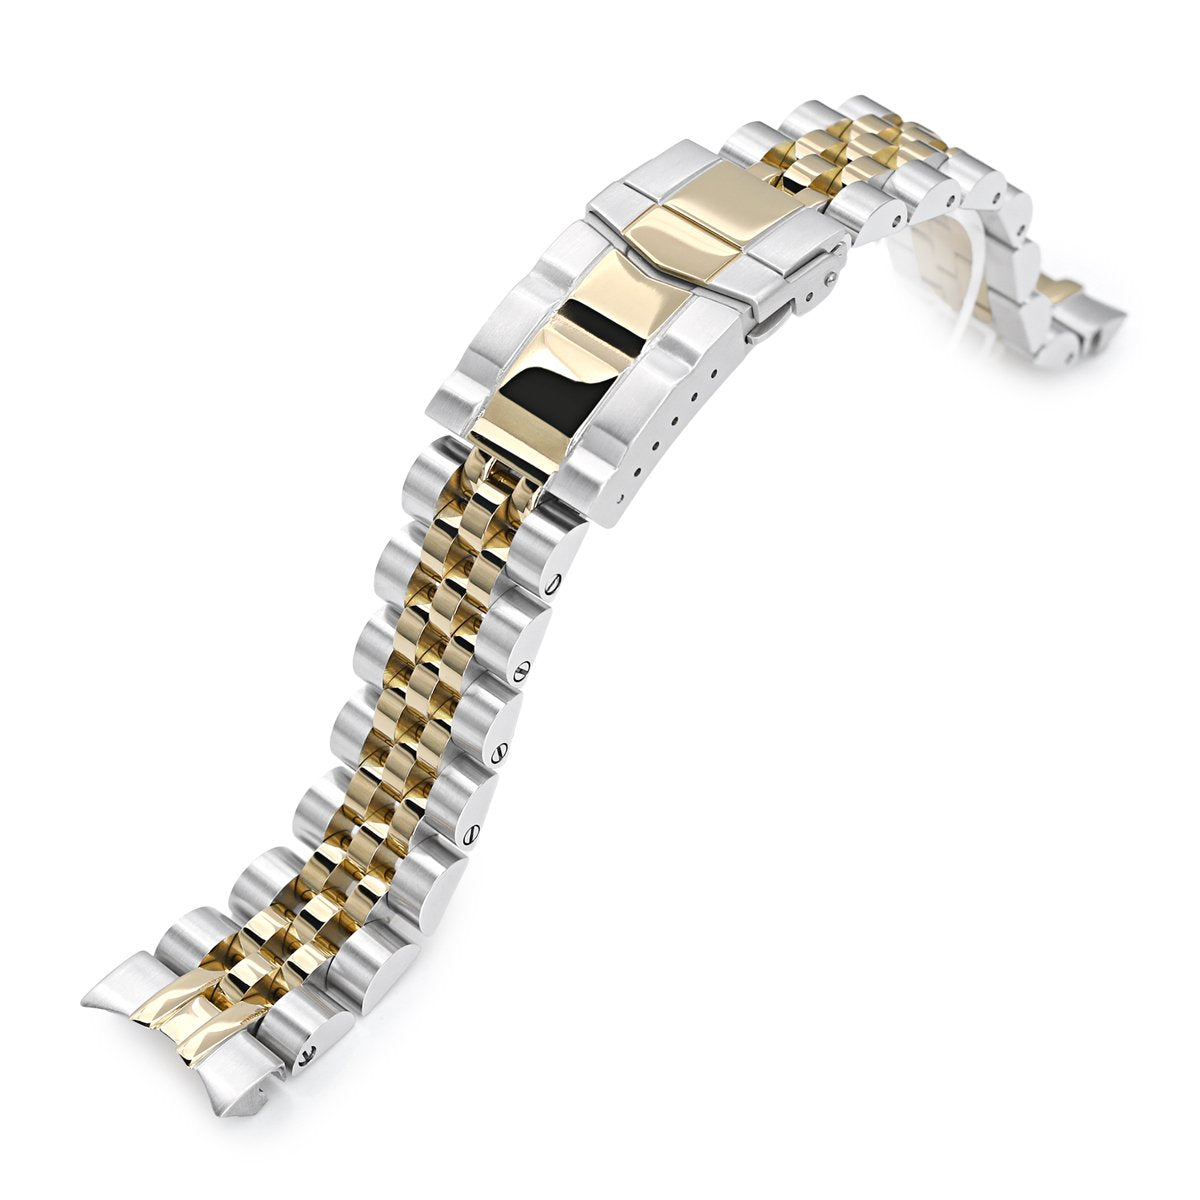 20mm Angus-J Louis 316L Stainless Steel Watch Bracelet for Seiko SARB035 Two Tone IP Gold SUB Clasp Strapcode Watch Bands